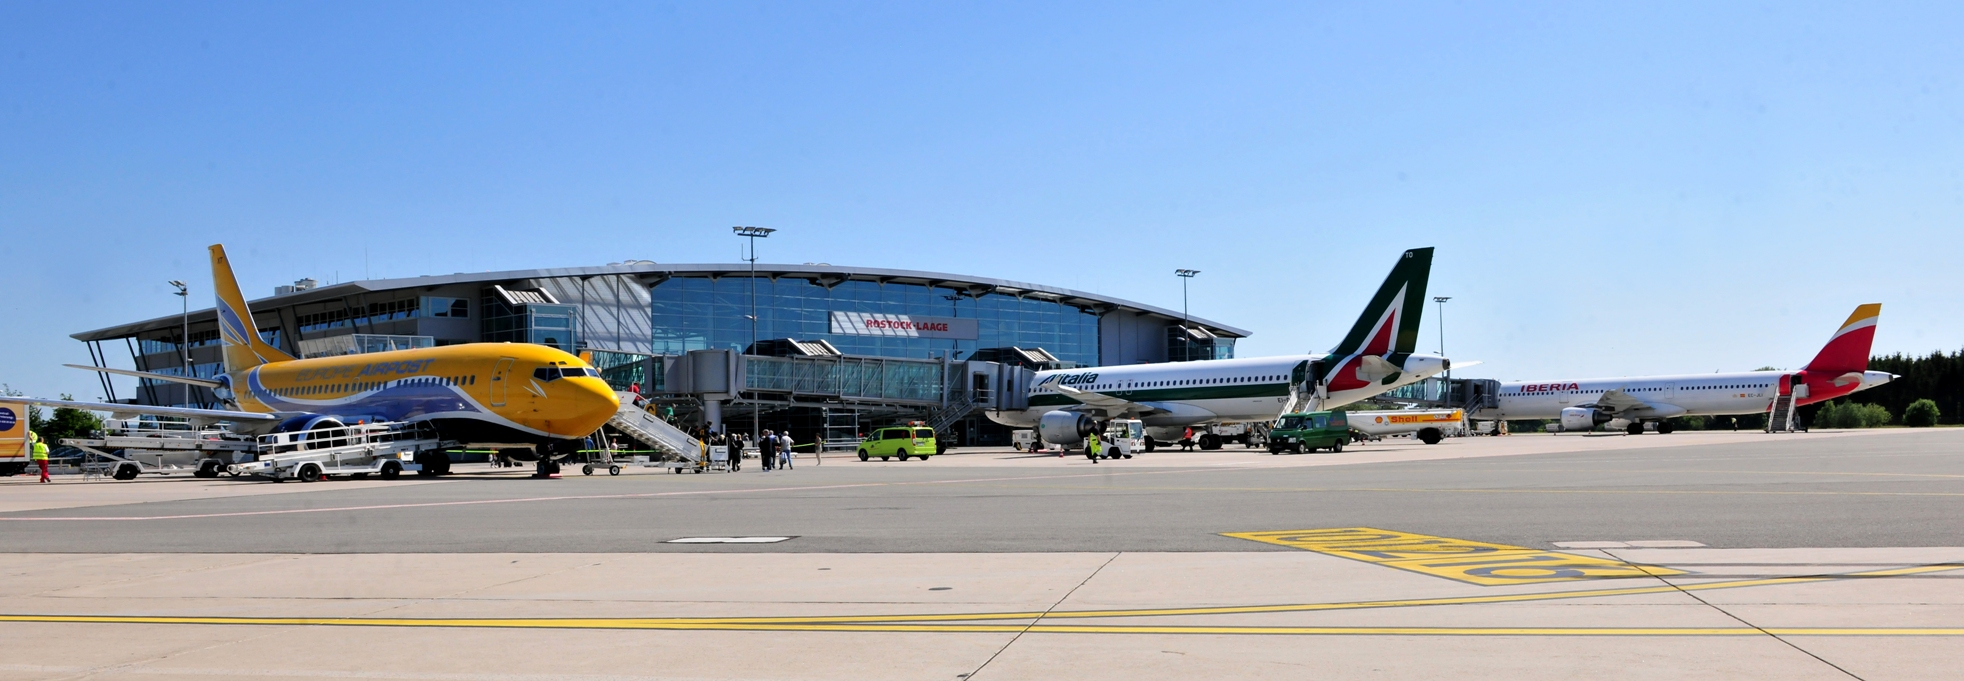 """Materna joins """"Inno Airport"""" environment at Rostock Laage Airport"""